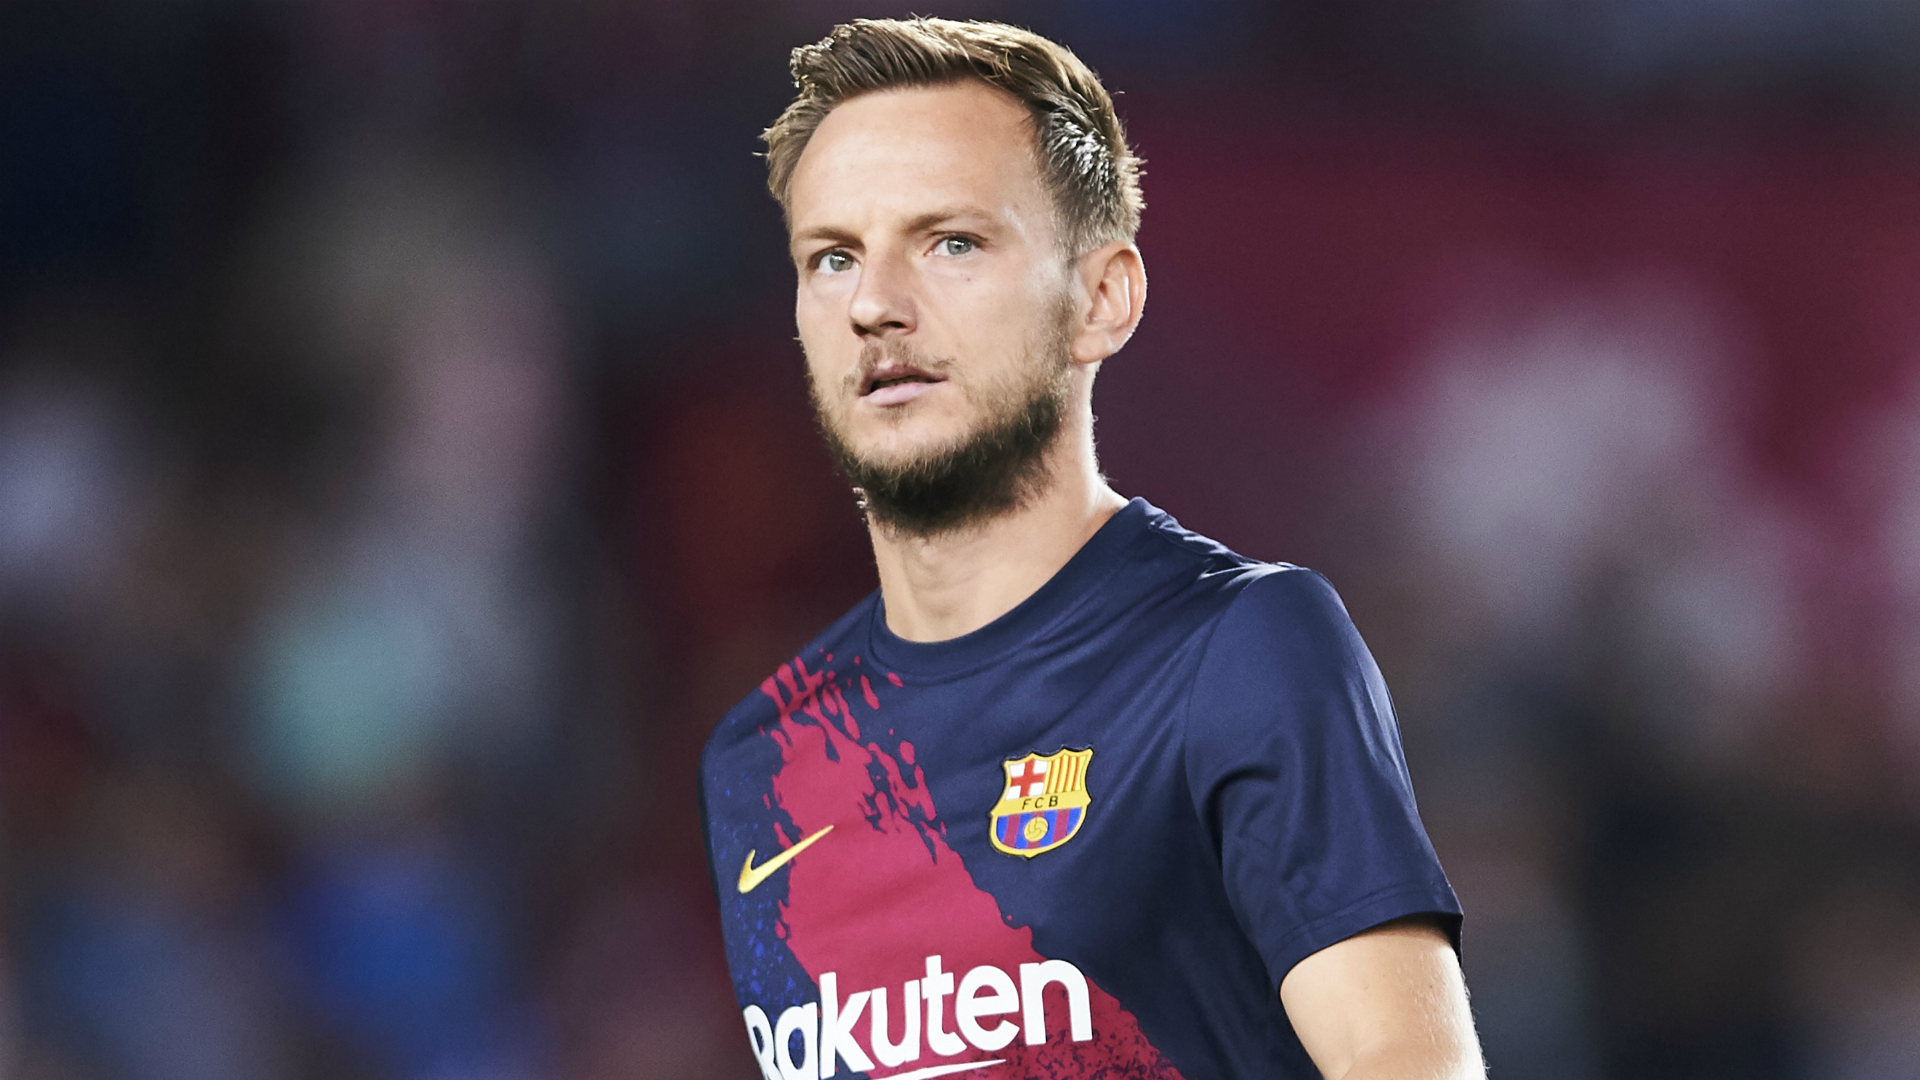 That's football – Rakitic exit from Barcelona would be no big surprise, says Prosinecki